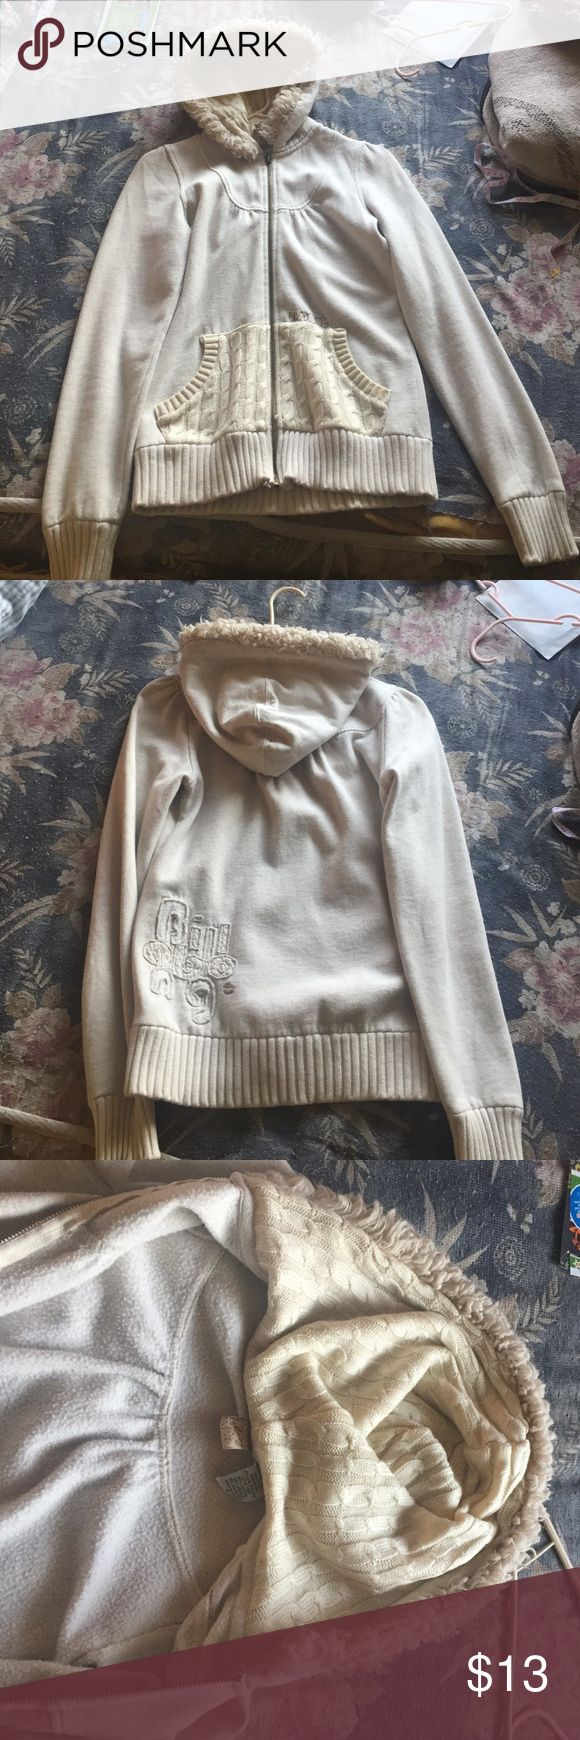 Fleece style zip up sweater Cream colored zip up hoodie with crochet pockets and inner hoodie. A bit thin material but very comfortable over all. Faux fur hoodie lining, 62% cotton, 23% acrylic, 15% polyester. Great for fall and winter. Billabong Jackets & Coats